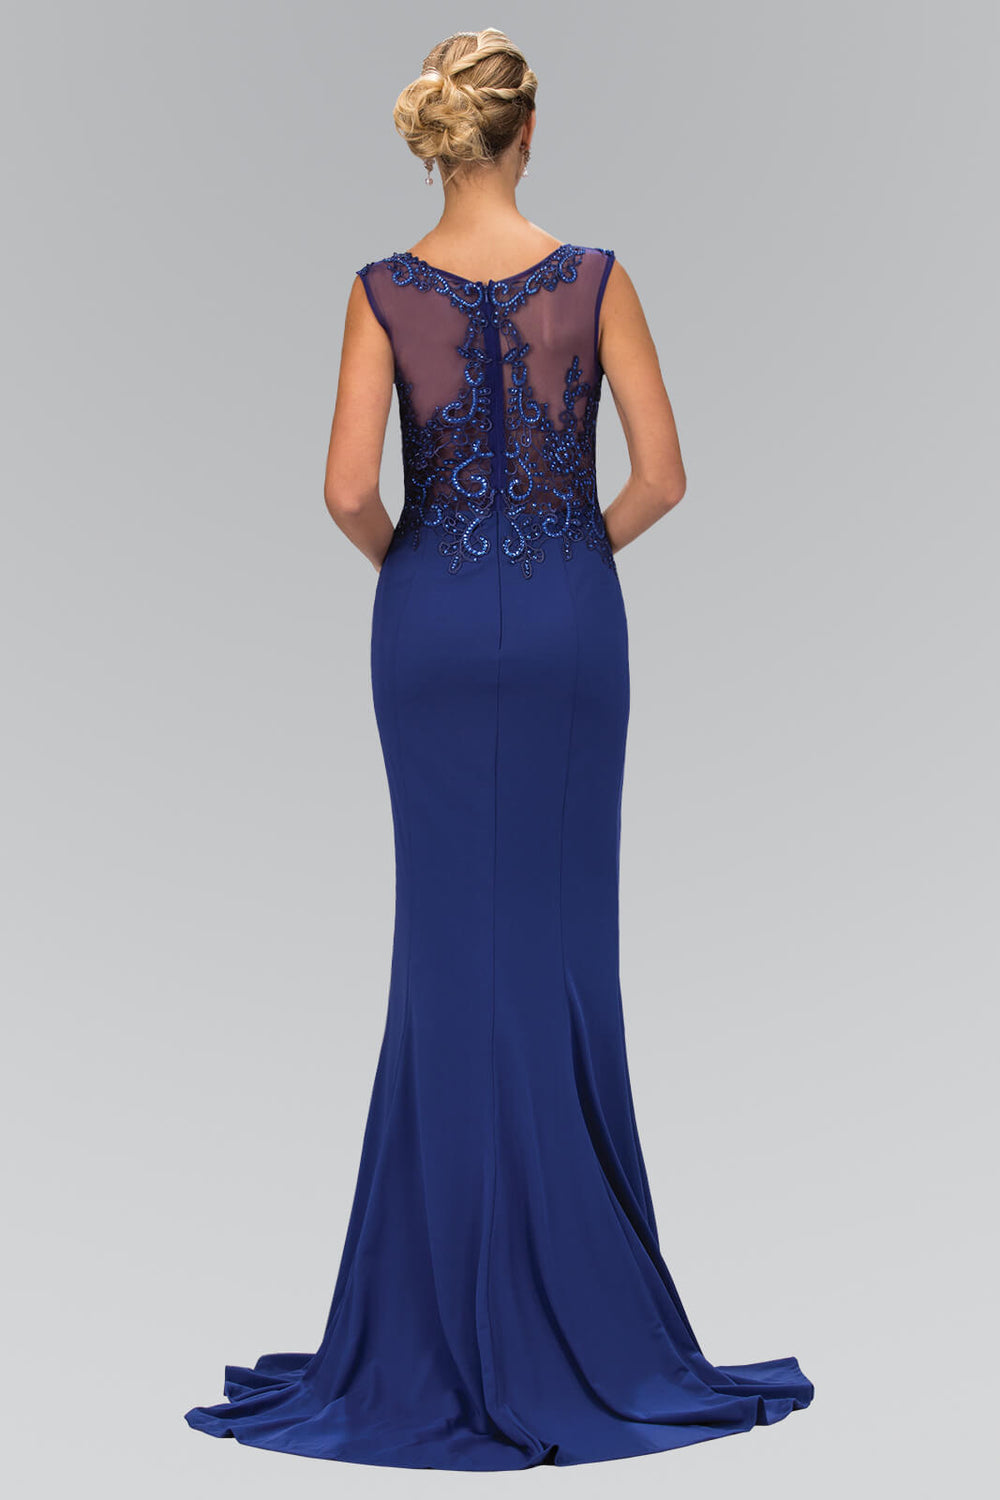 Sleeveless Rome Jersey Long Prom Dress Formal - The Dress Outlet